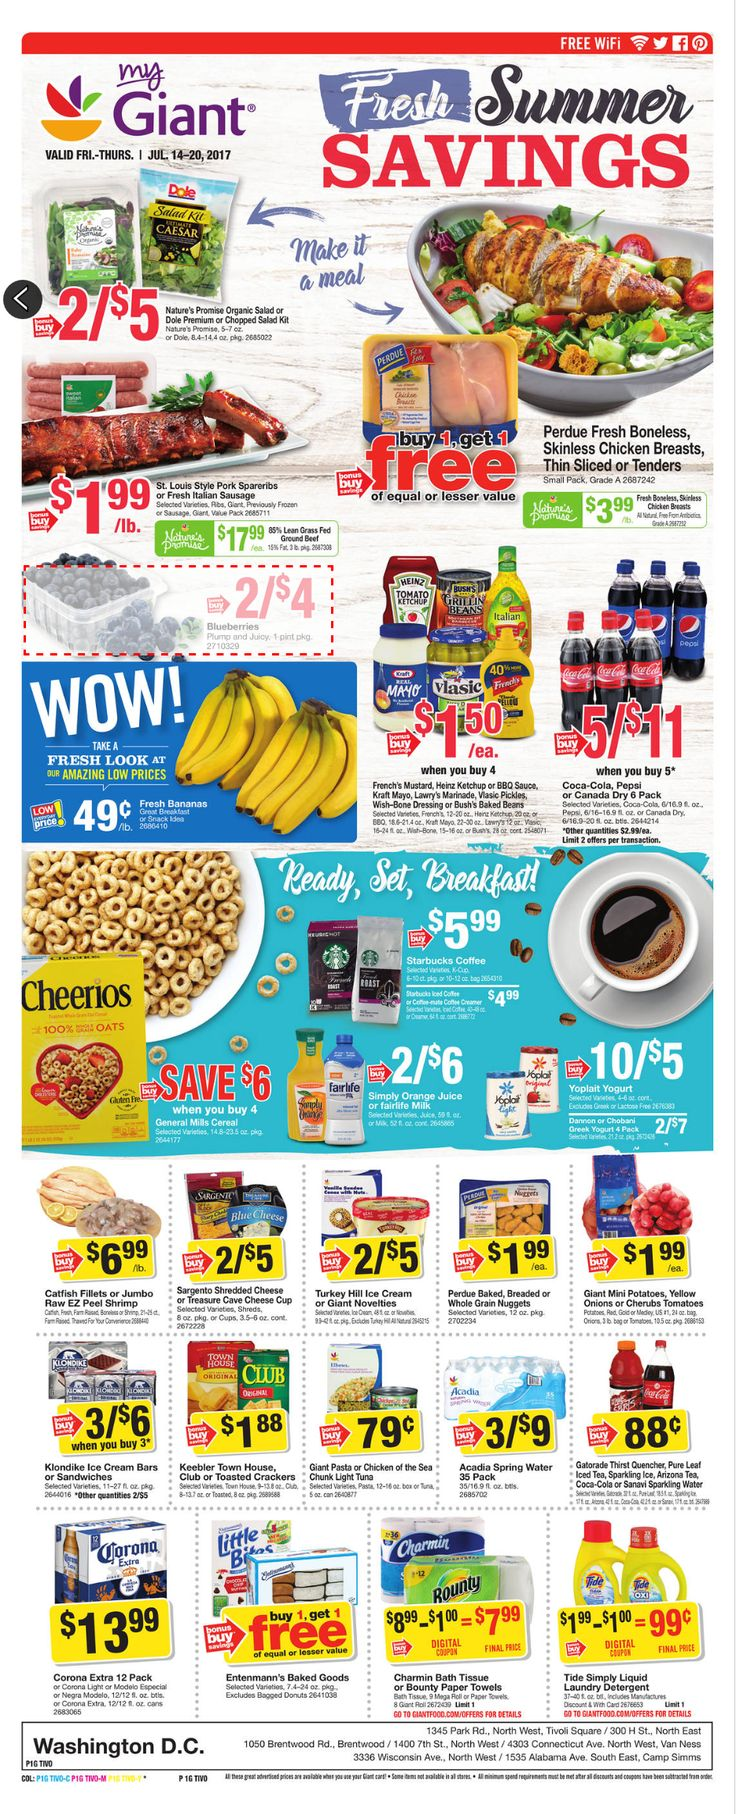 Giant Food Weekly Ad July 14 - 20, 2017 - http://www.olcatalog.com/grocery/giant-food-weekly-ad.html